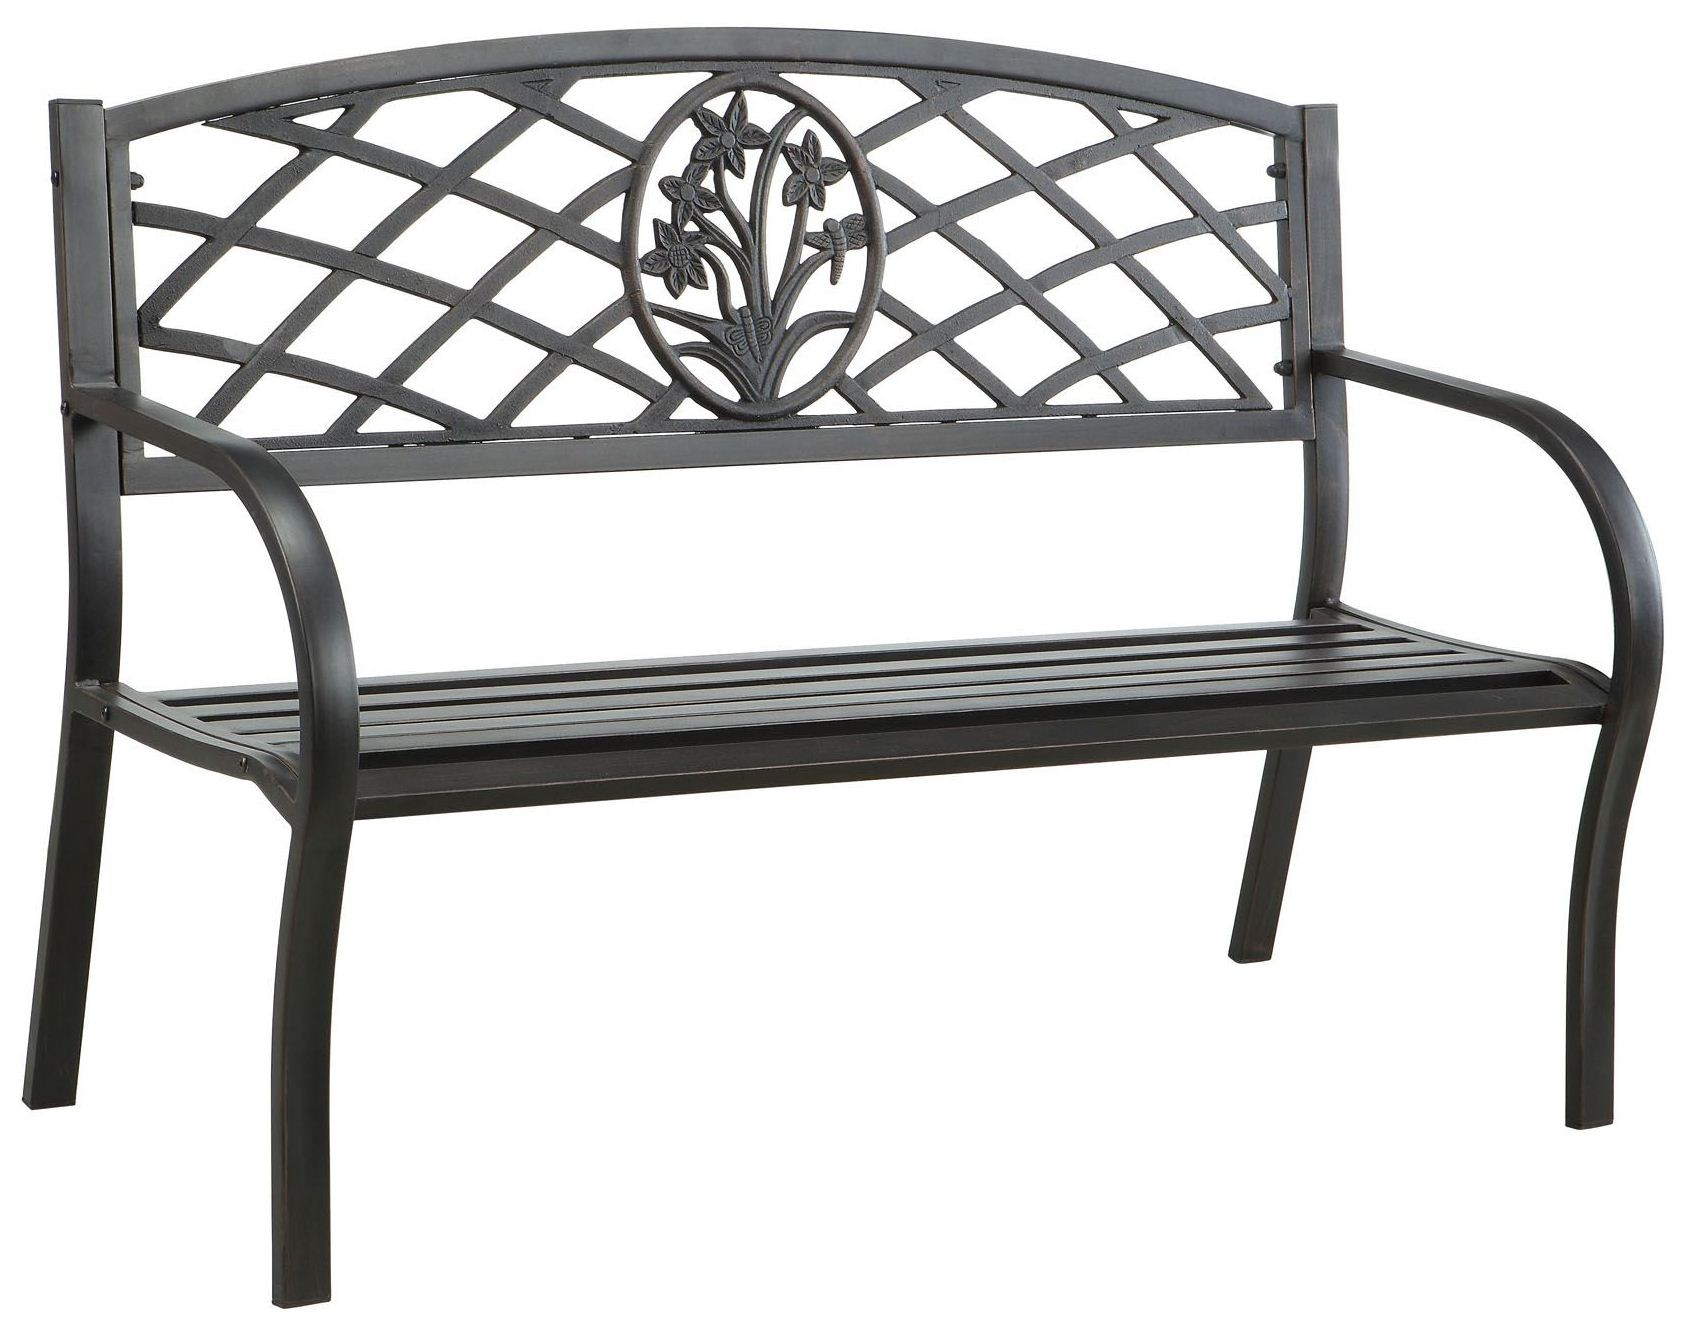 Minot Steel Park Bench From Furniture Of America Cm Ob1809 Coleman Furniture